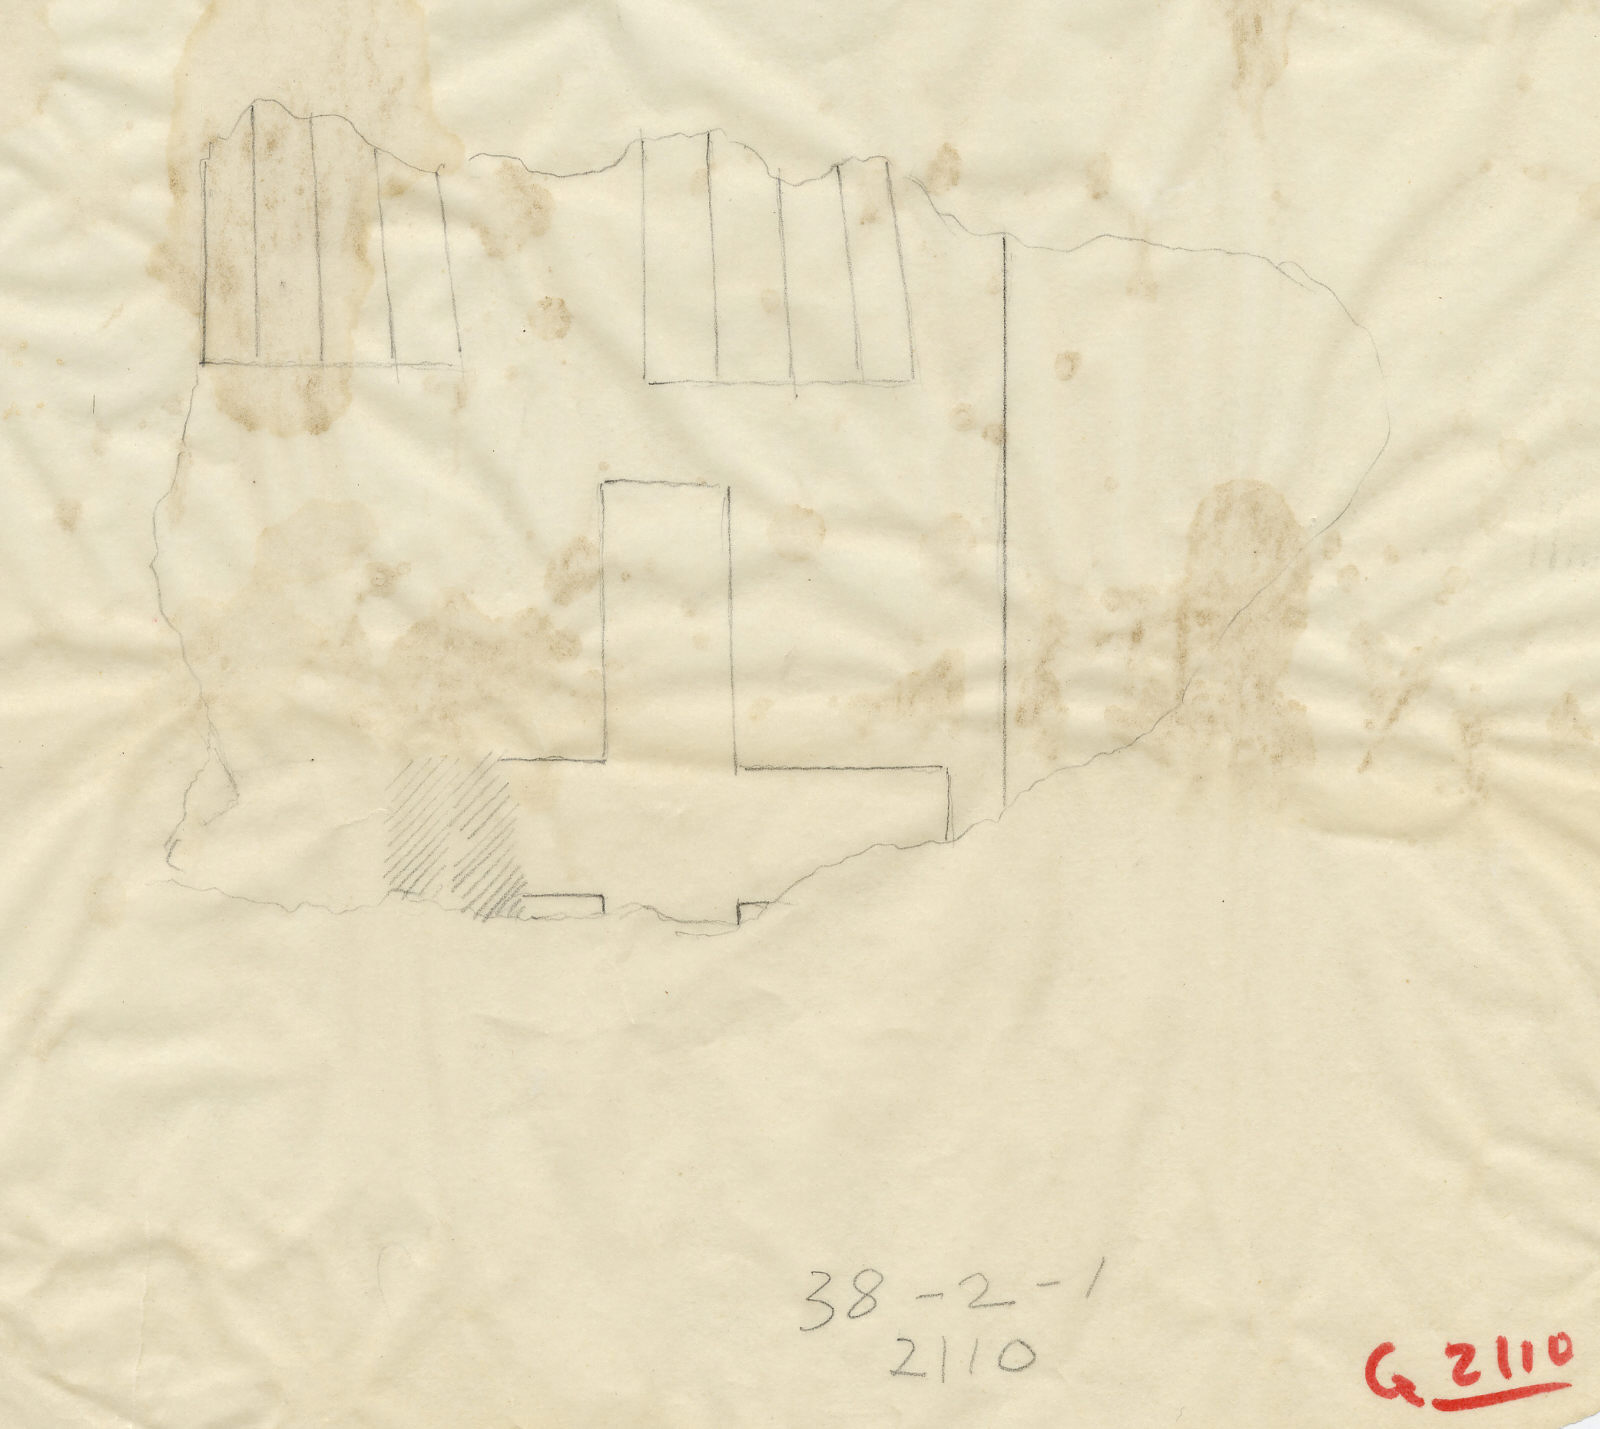 Drawings: G 2110: relief fragment